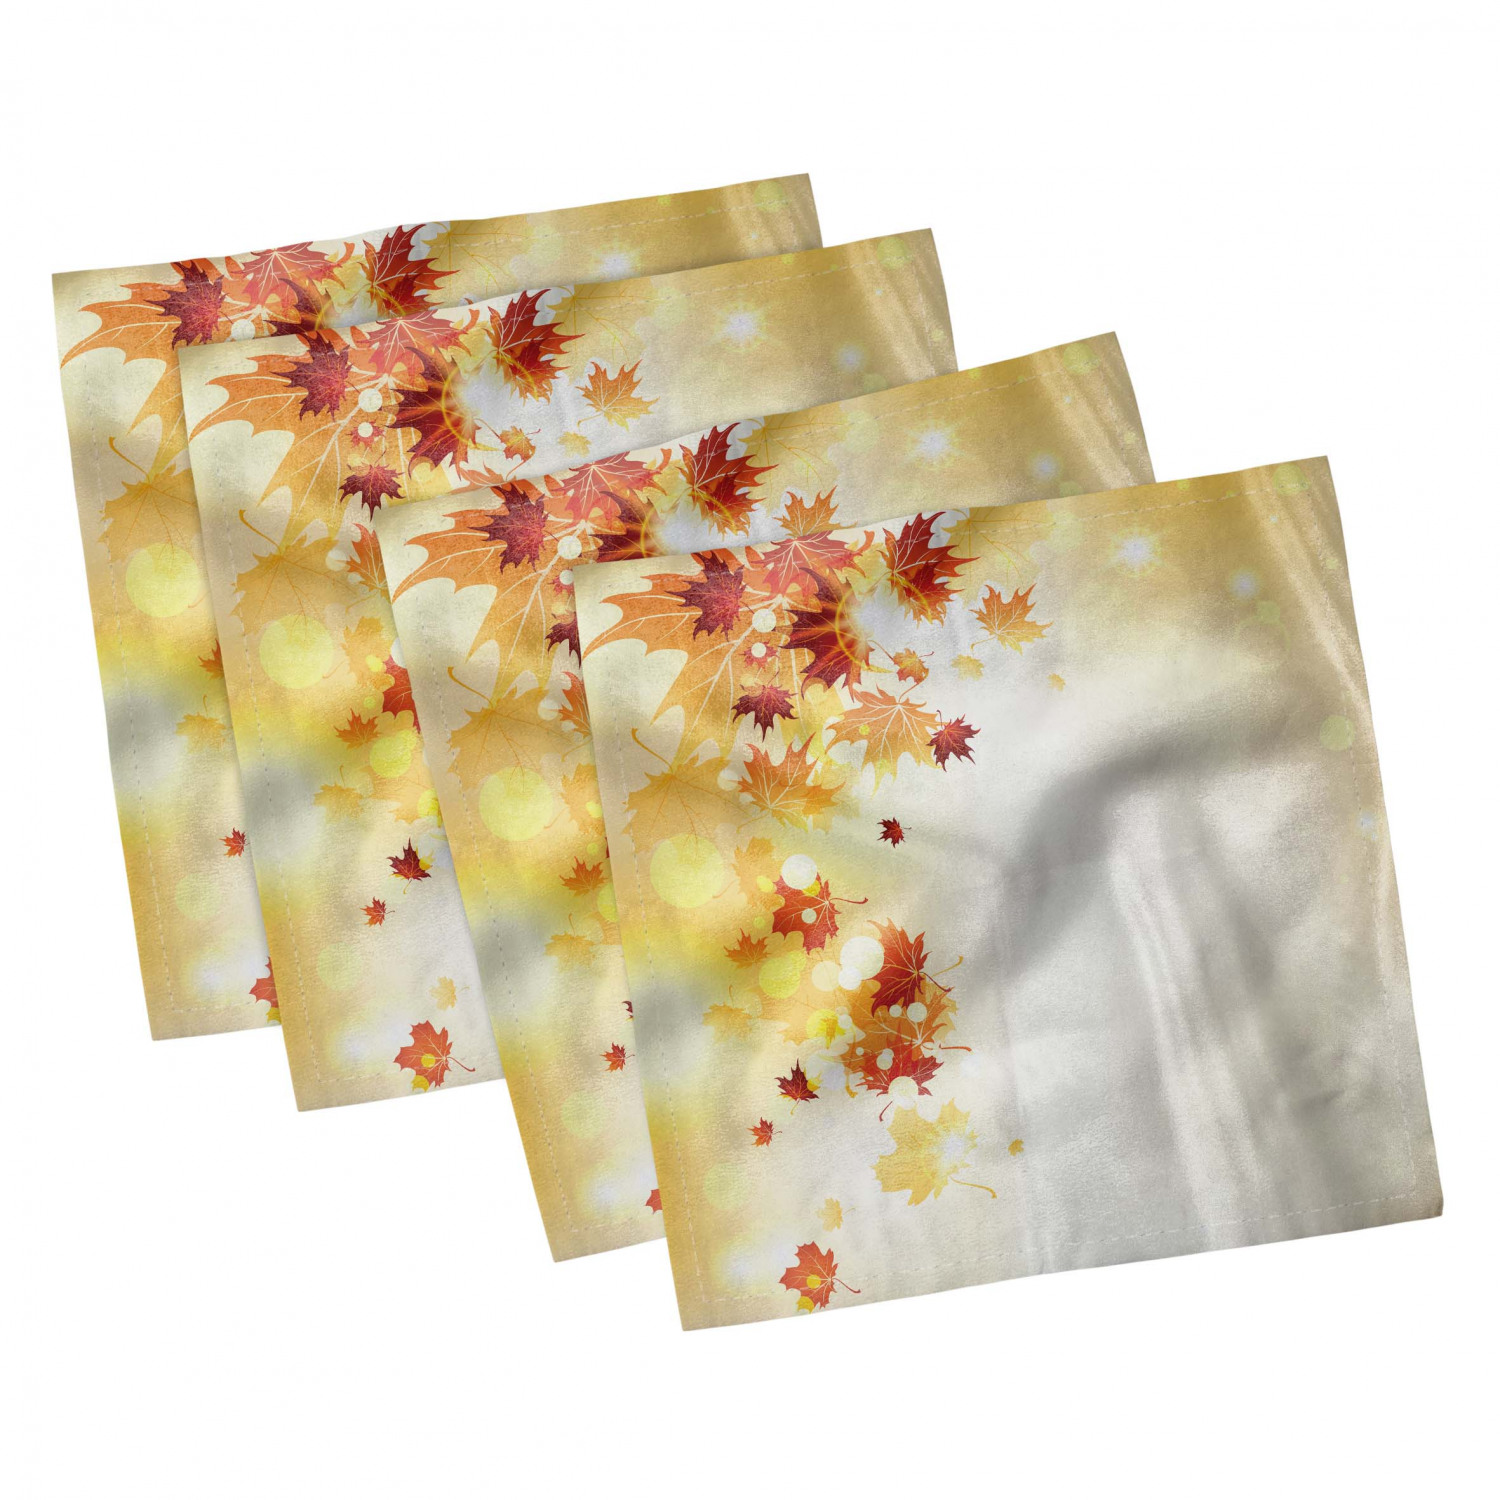 thumbnail 51 - Ambesonne-Autumn-Fall-Decorative-Satin-Napkins-Set-of-4-Party-Dinner-Fabric